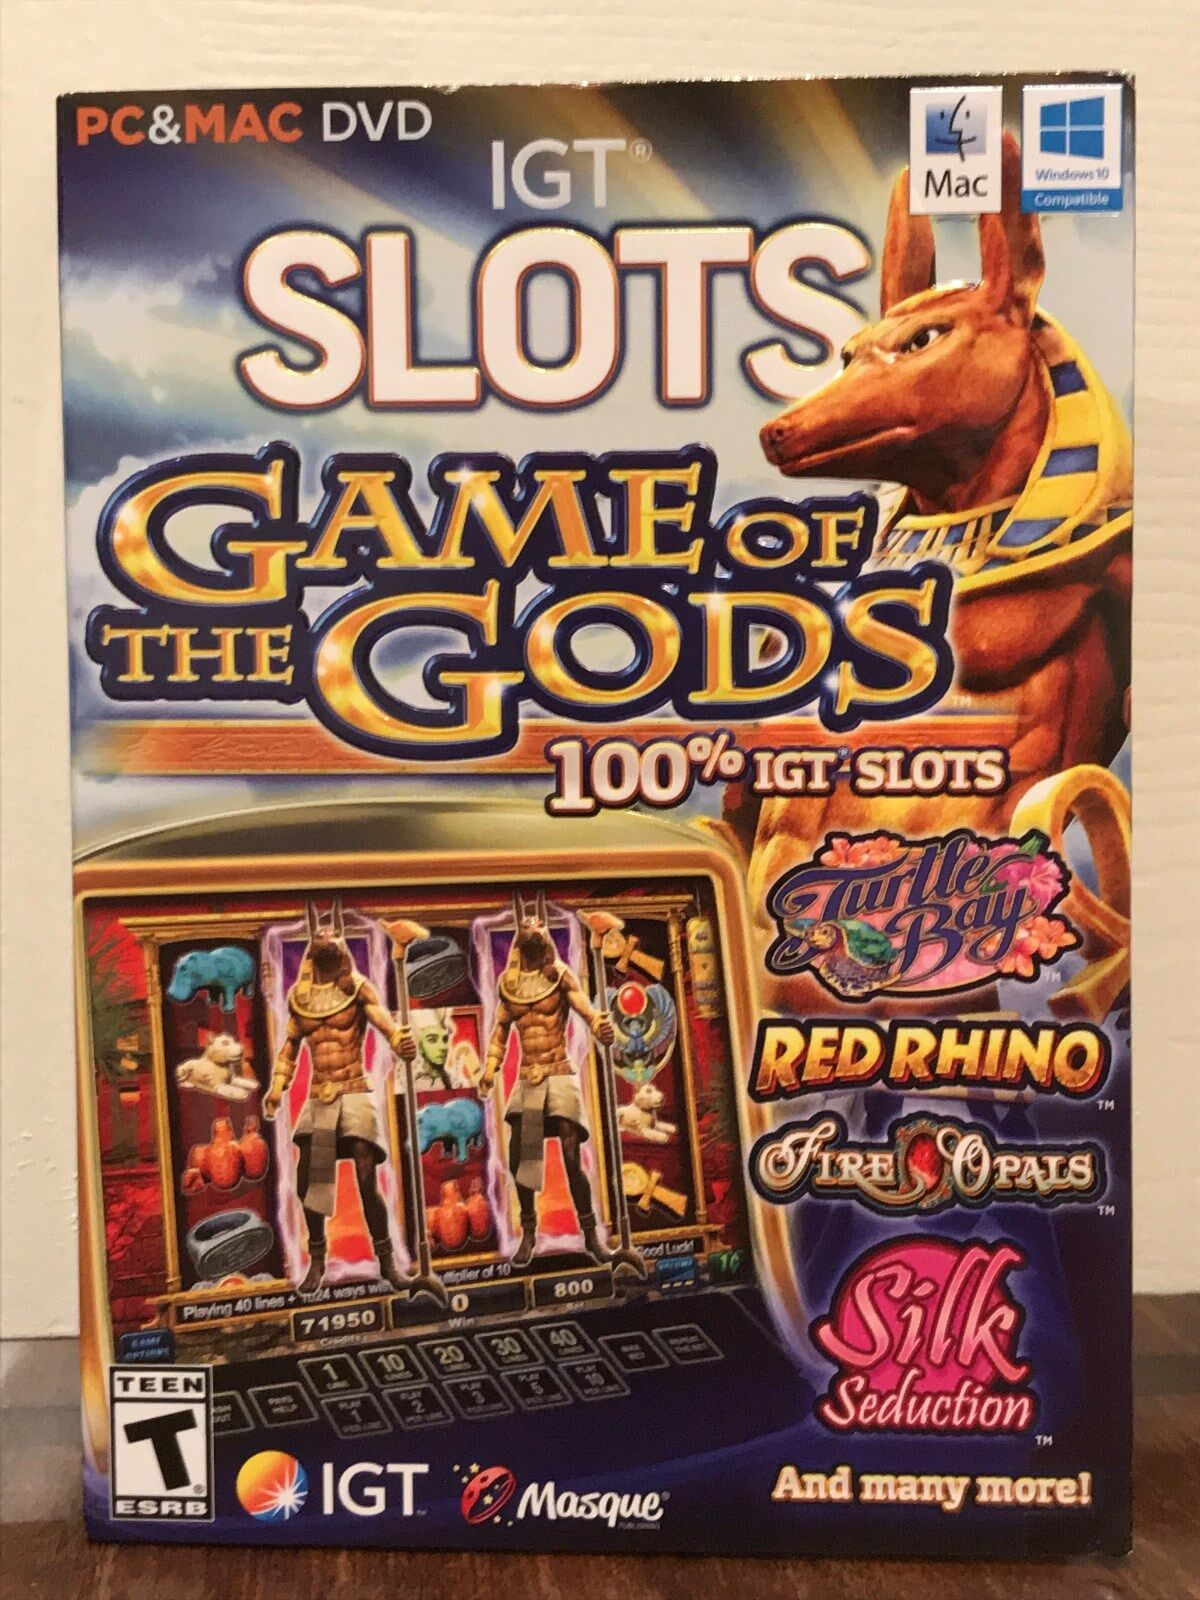 Computer Games - game of the gods --- collection of 15 igt slots casino computer games --- new